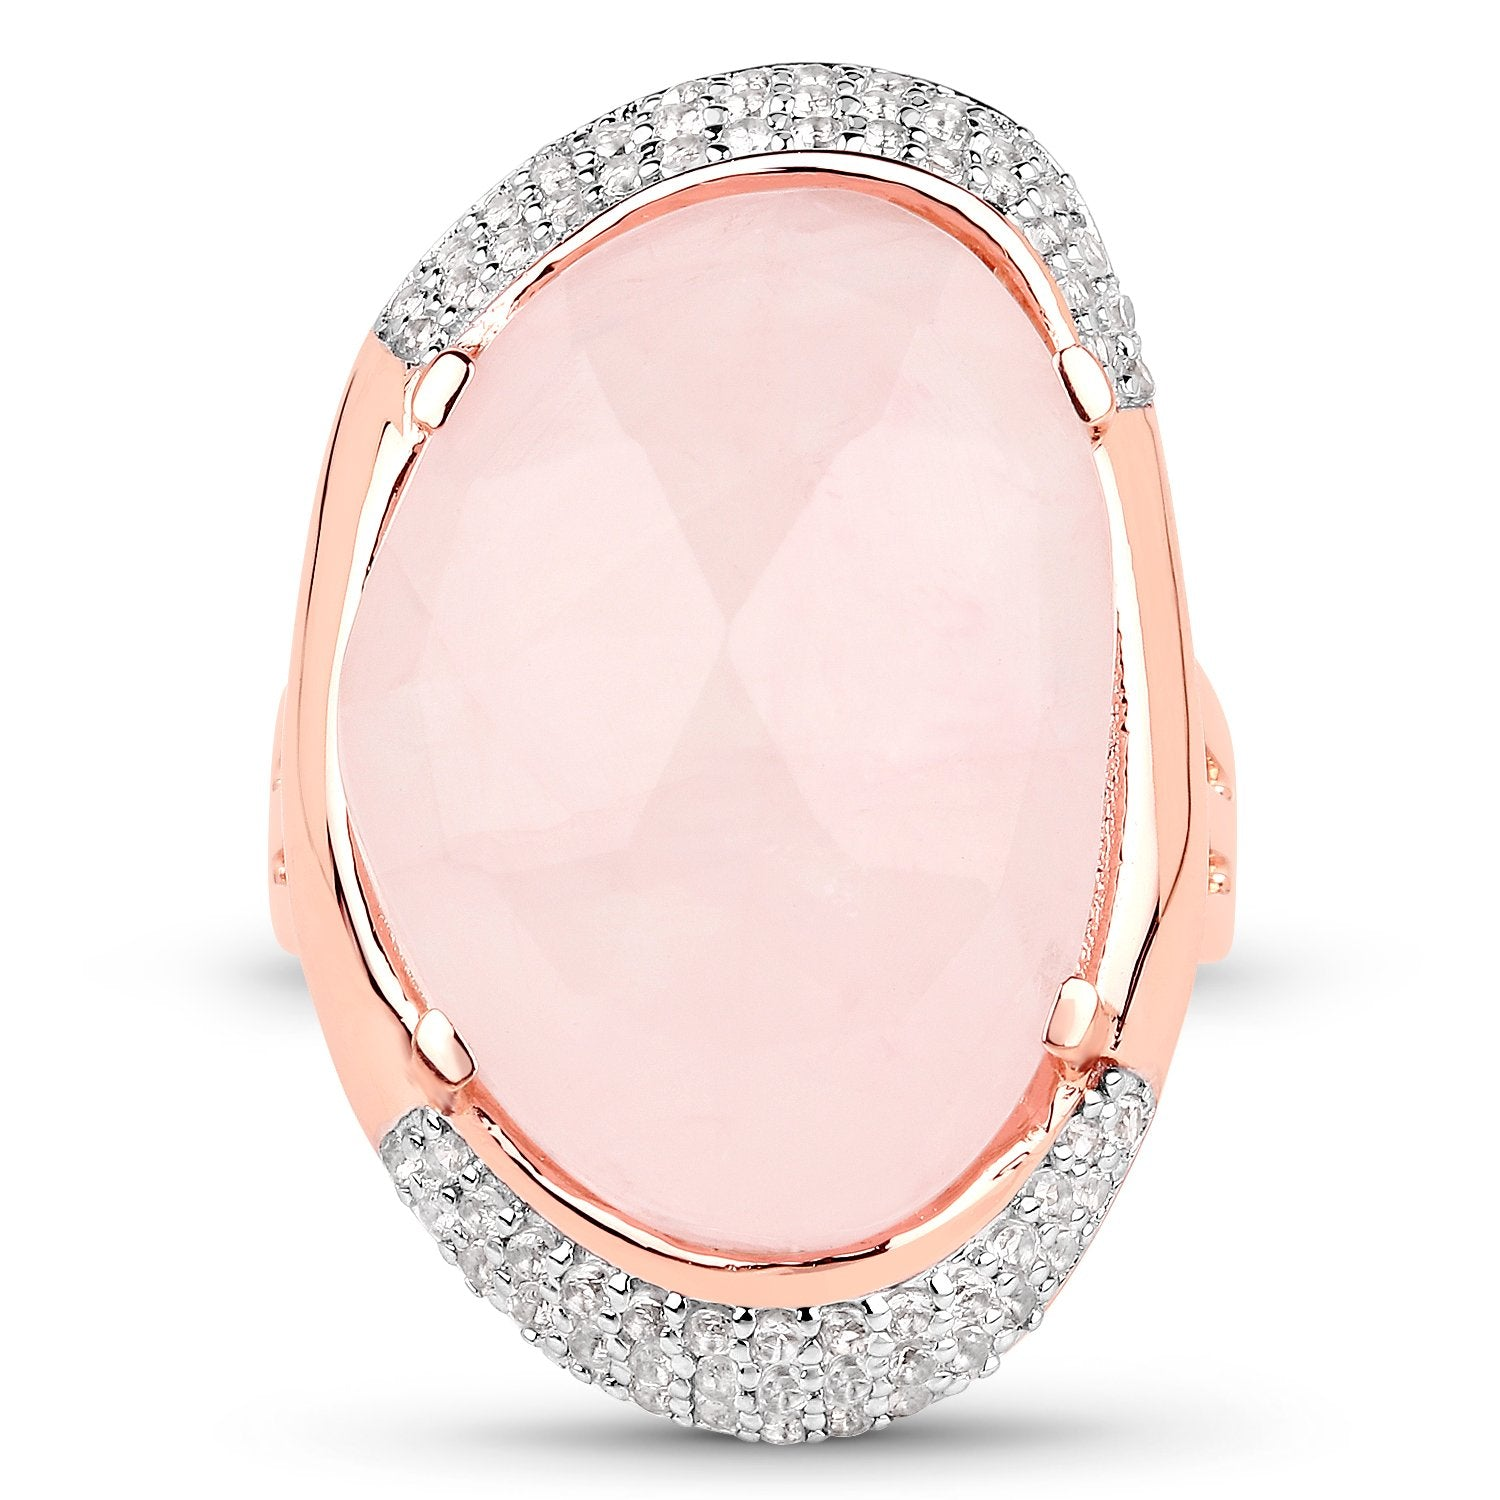 LoveHuang 15.19 Carats Genuine Rose Quartz and White Topaz Statement Ring Solid .925 Sterling Silver With 18KT Rose Gold Plating